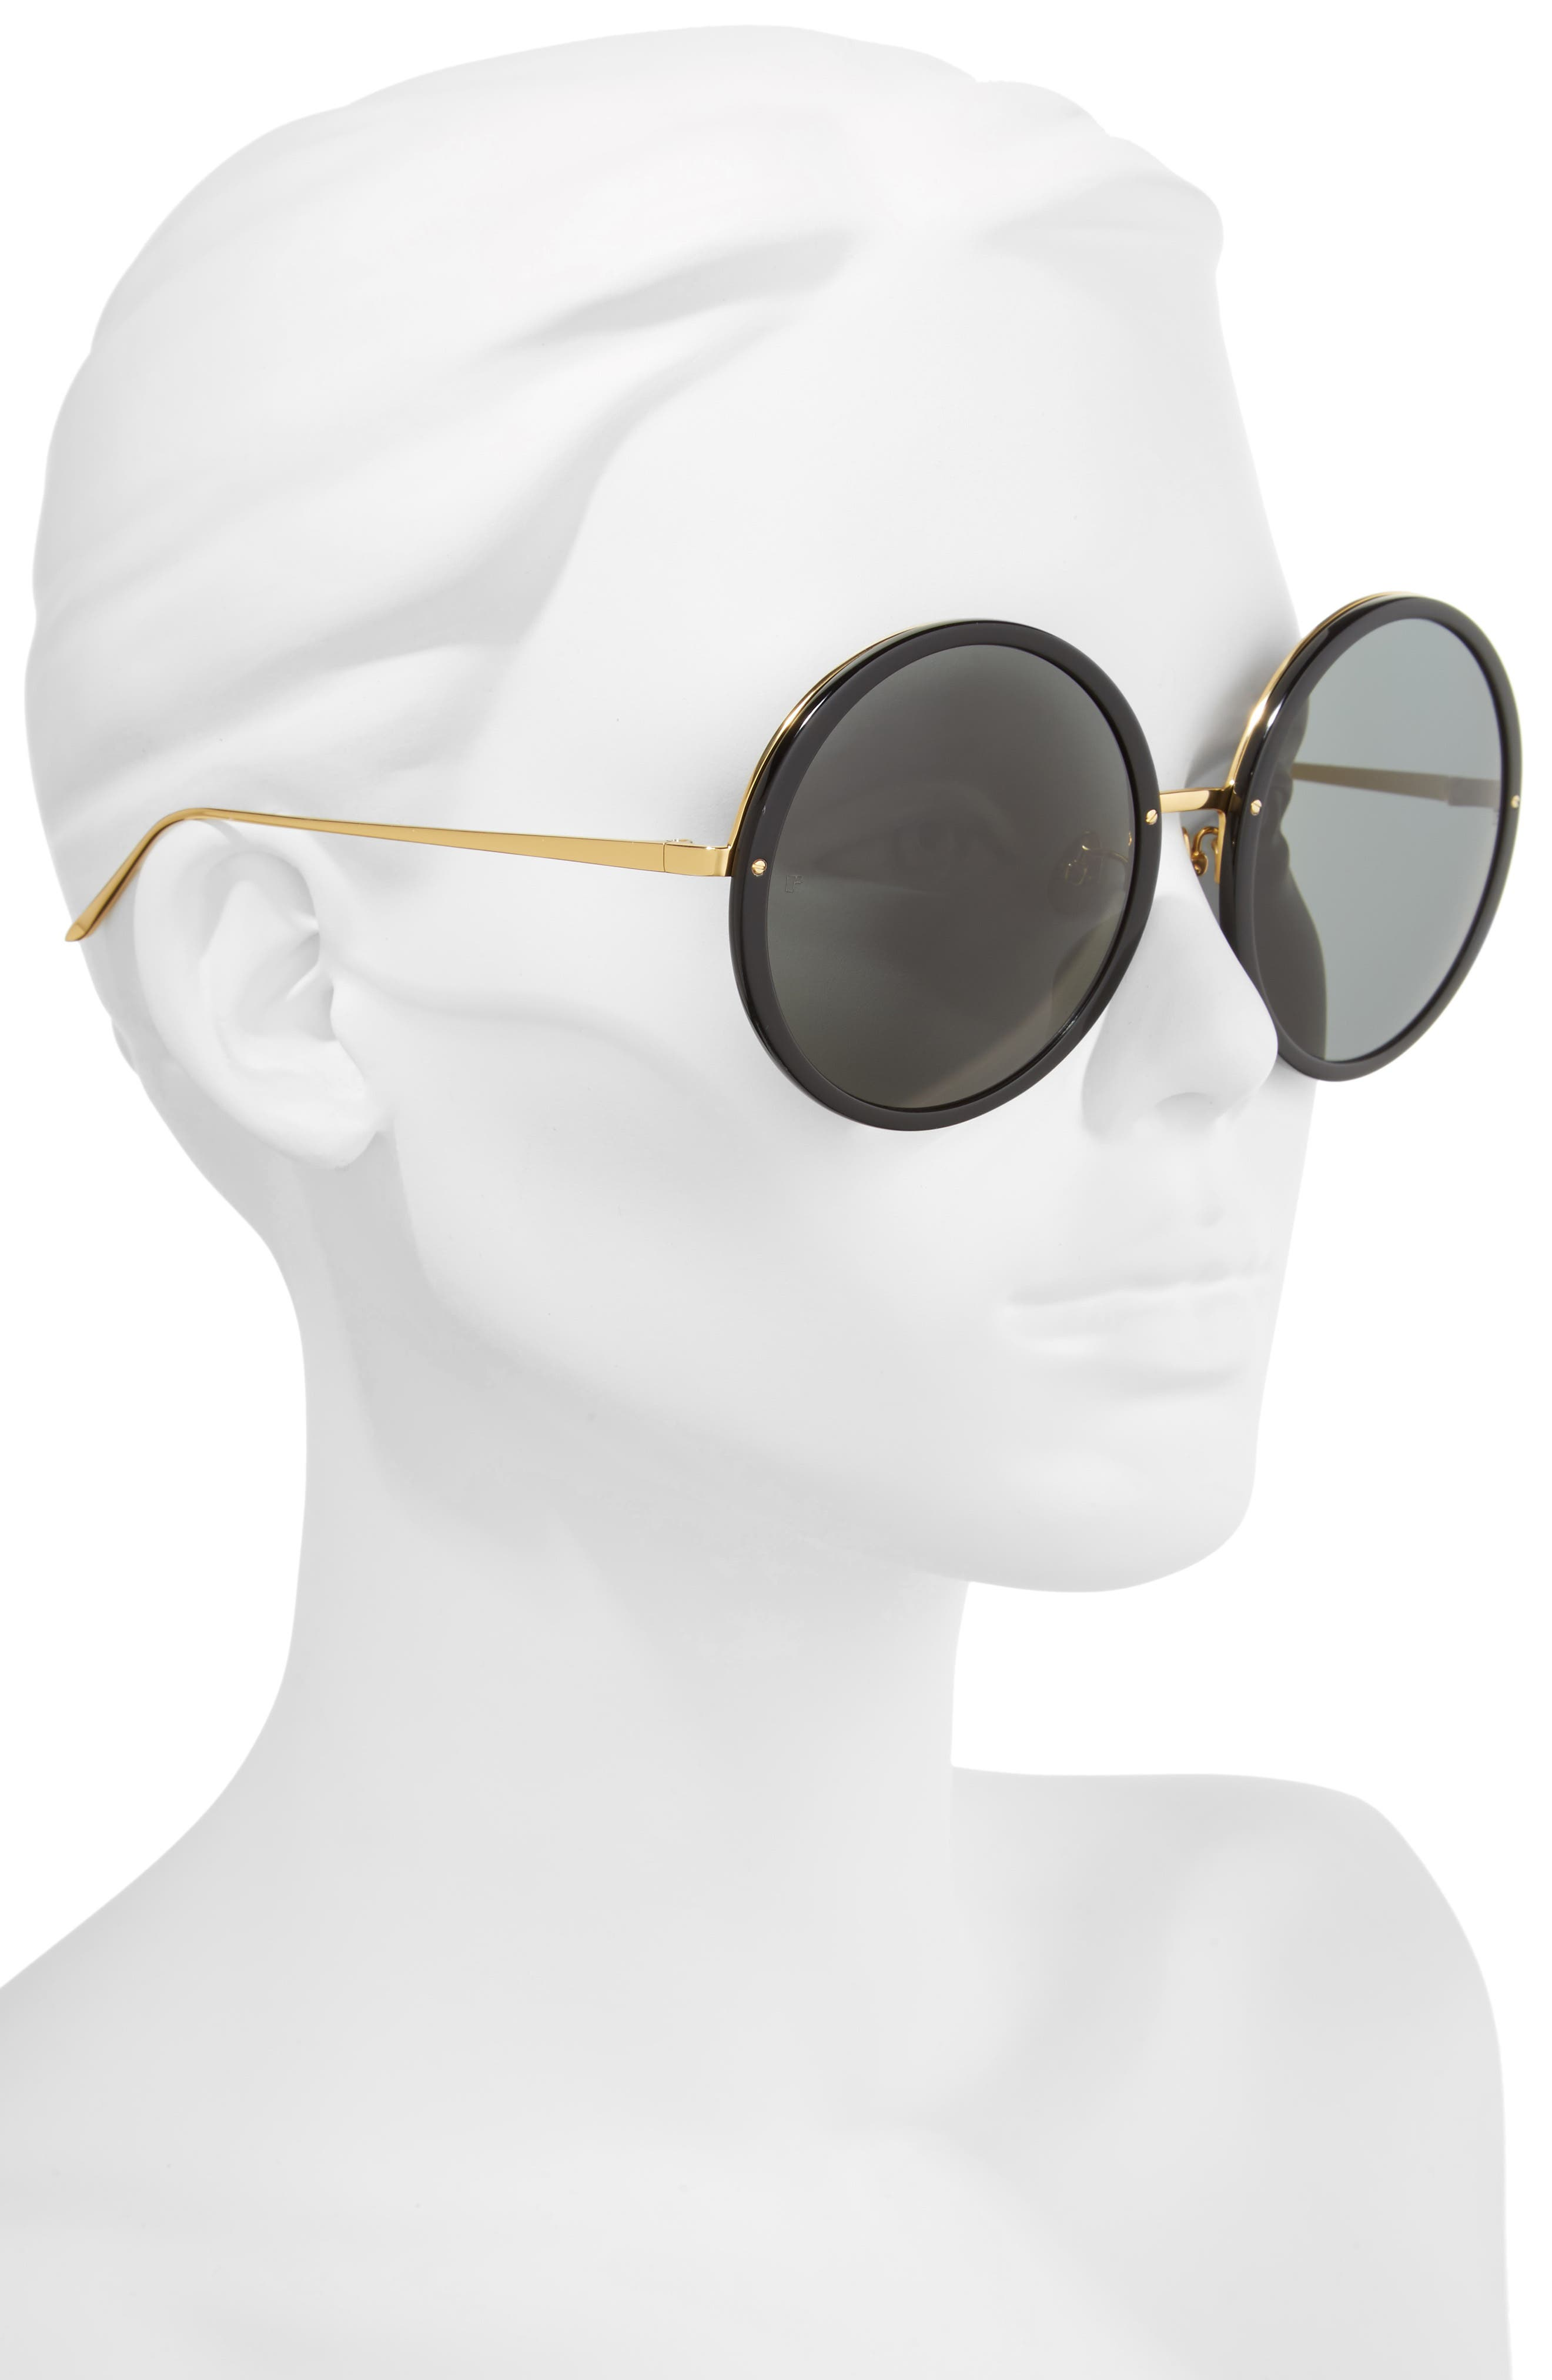 61mm Round 18 Karat Gold Trim Sunglasses,                             Alternate thumbnail 2, color,                             Black/ Yellow Gold/ Grey